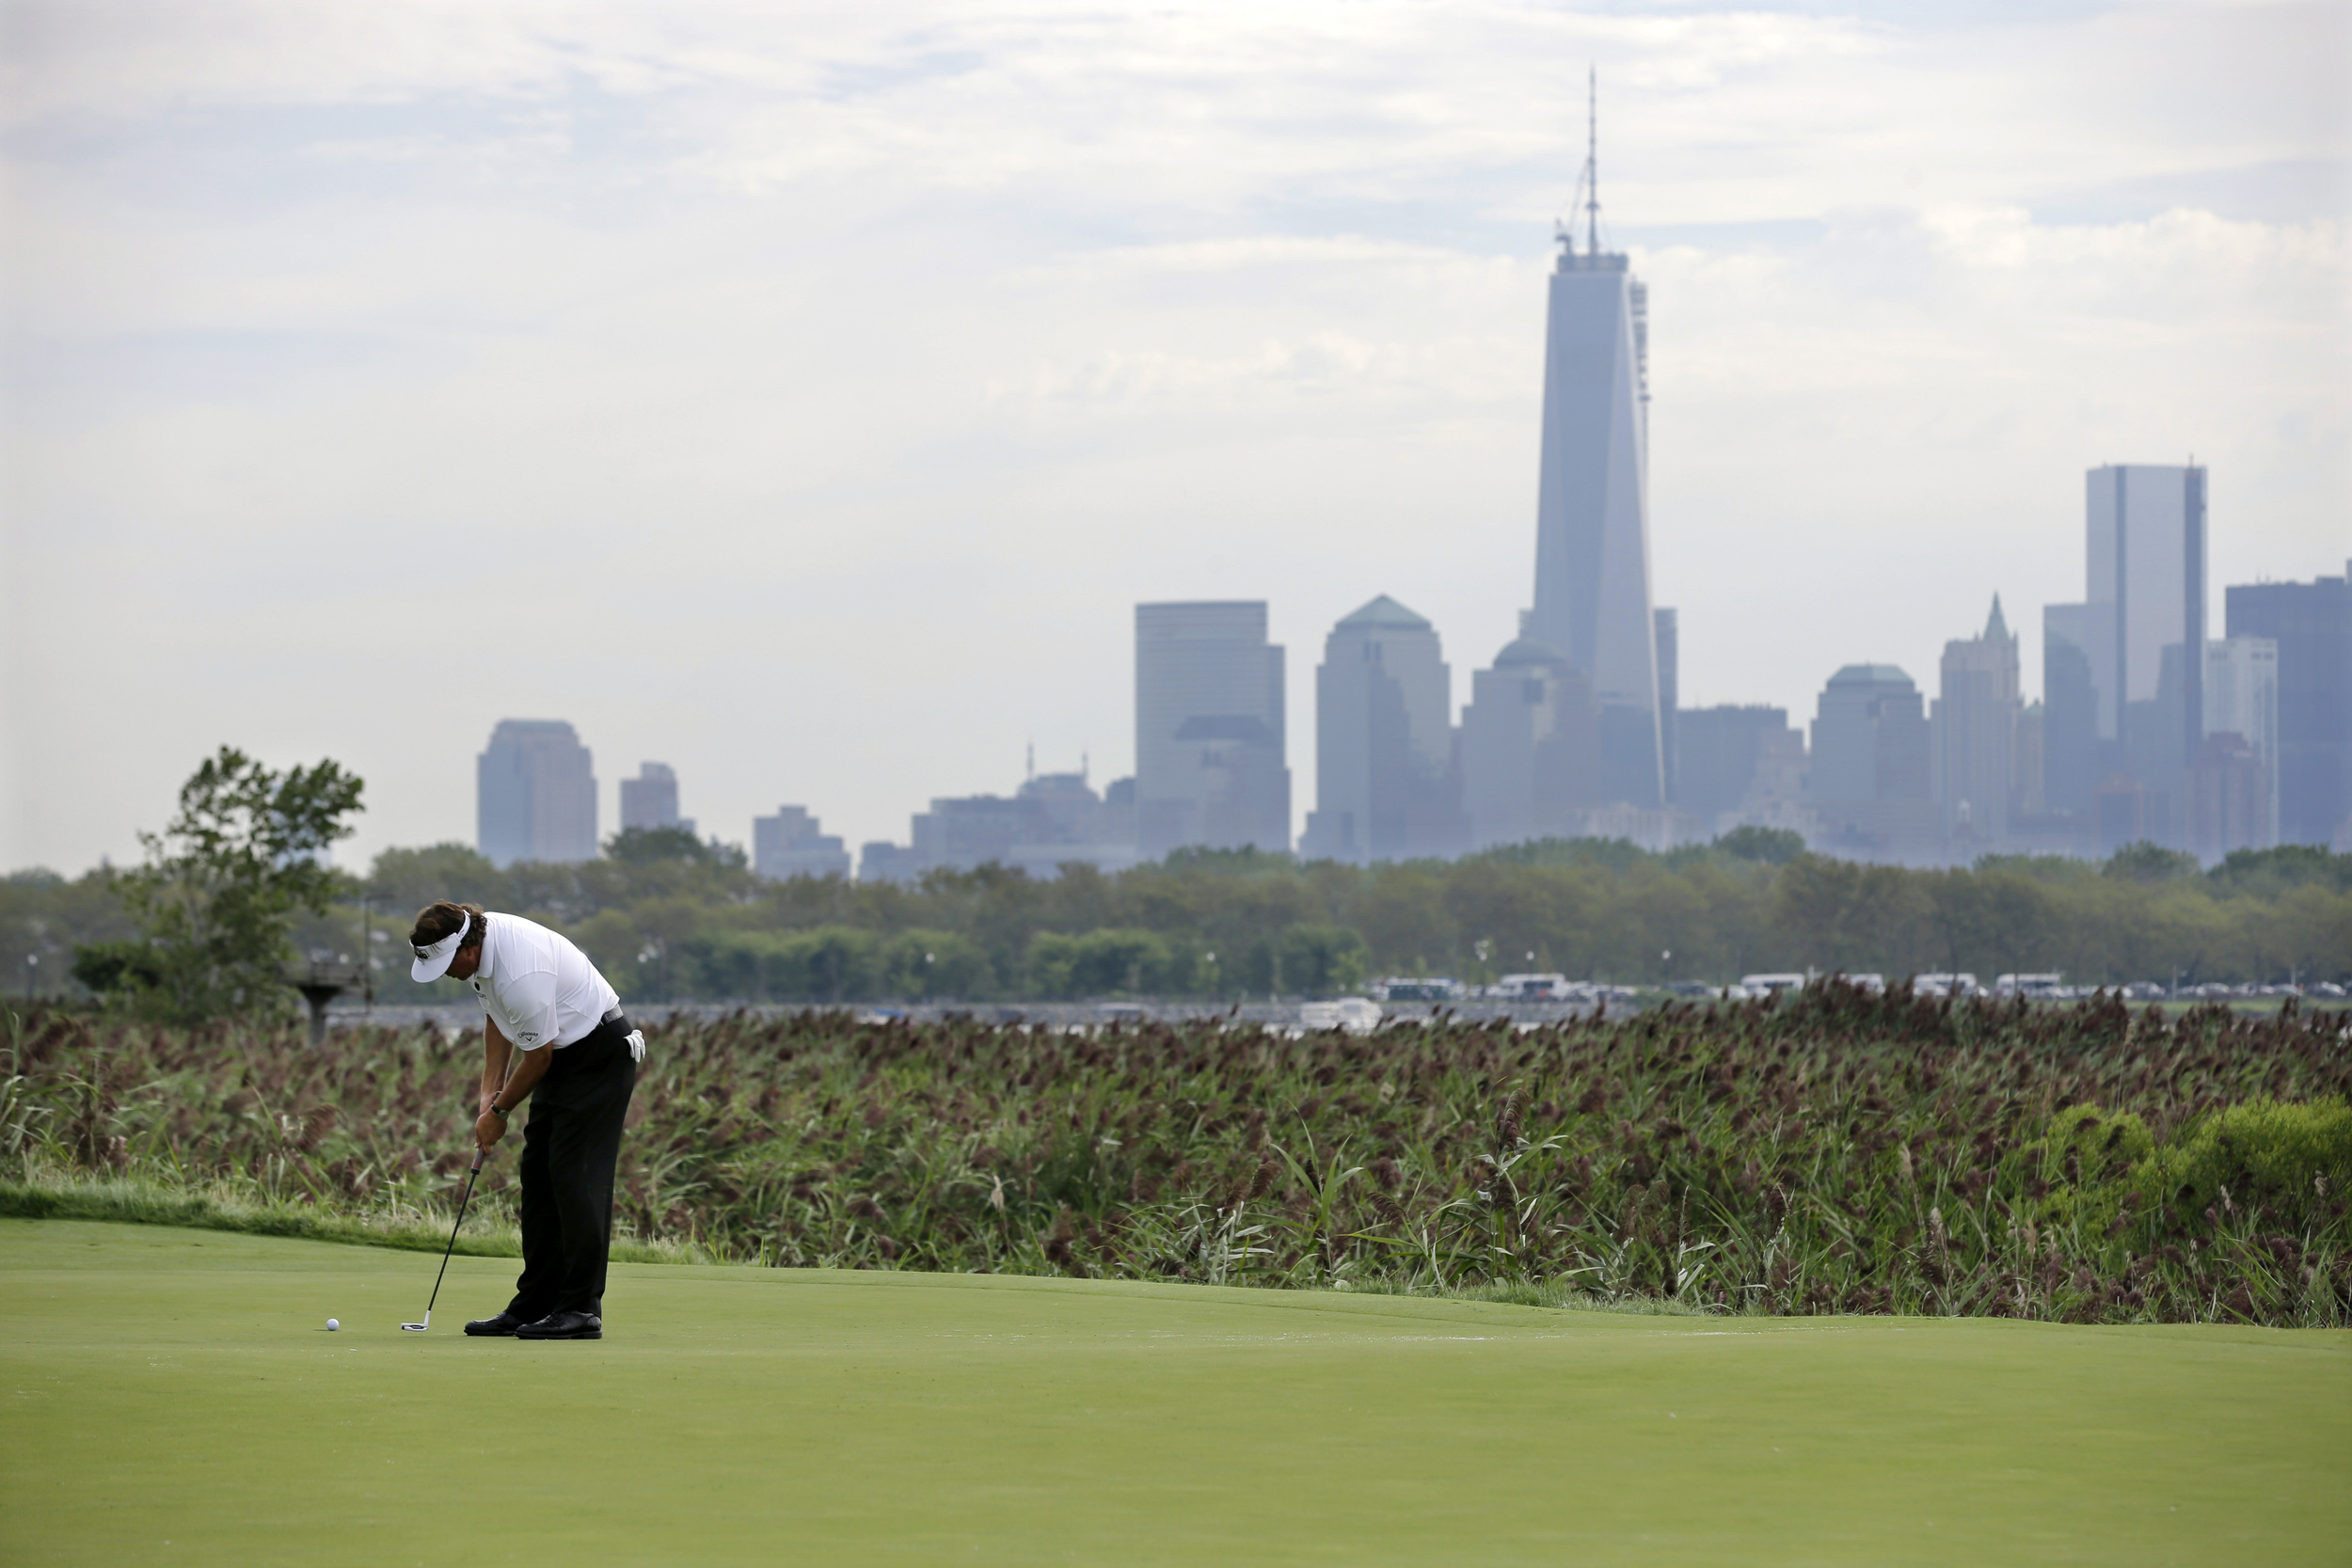 Phil Mickelson watches a putt as One World Trade Center dominates the epic views from Liberty National. (Photo courtesy of golfweek.com)